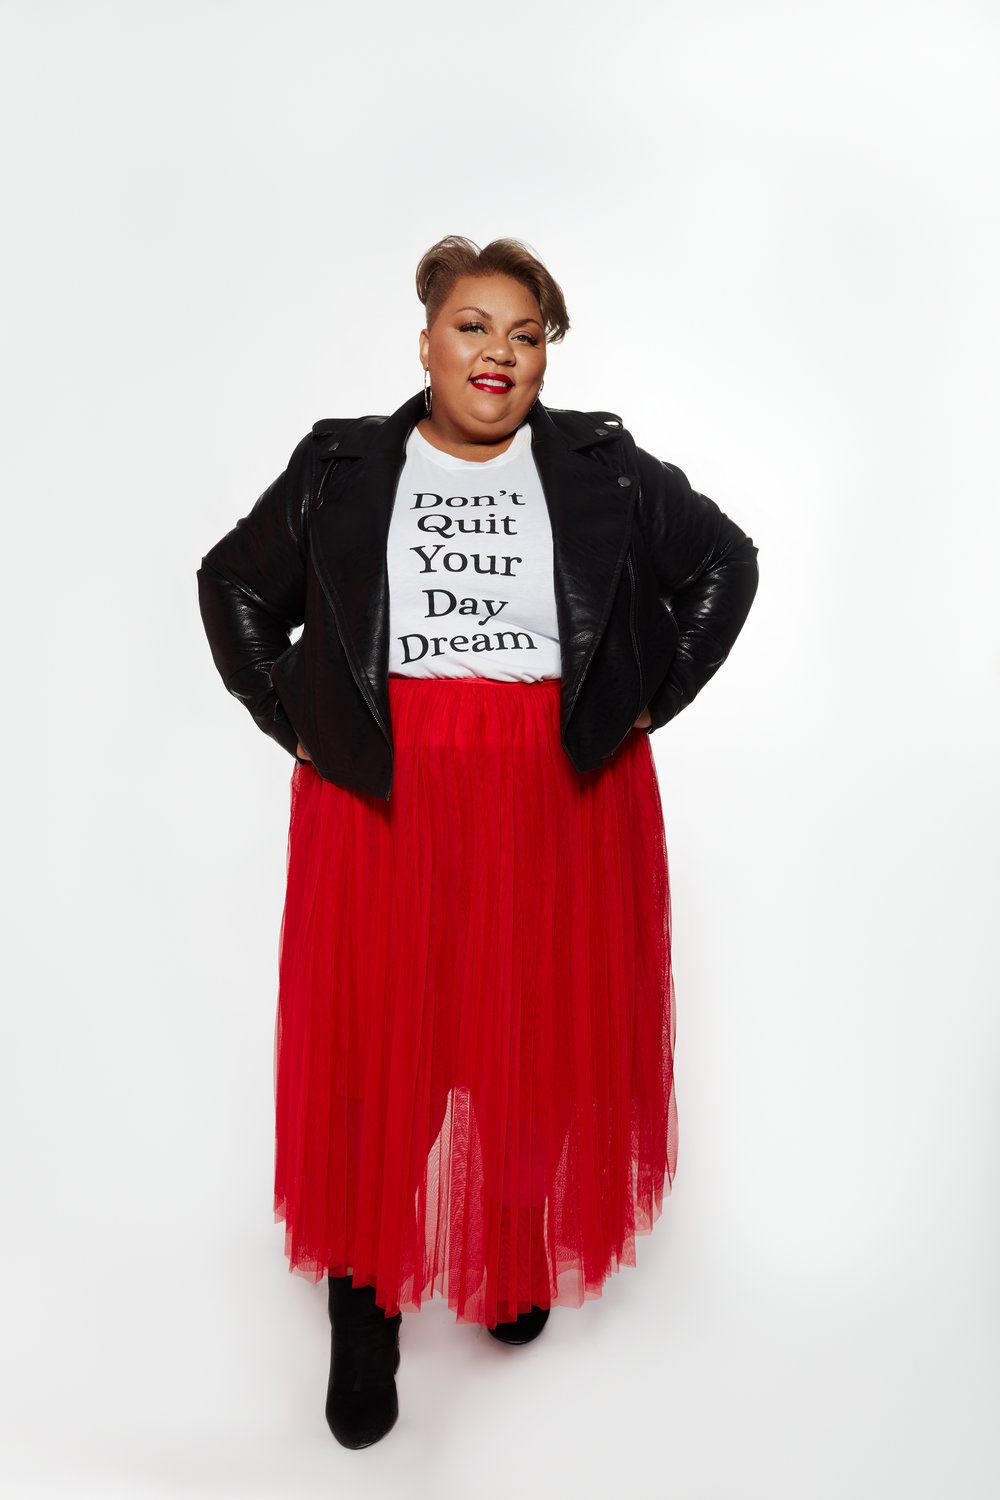 First Look: Don't Quit Your Daydream - I have to admit I'm obsessed with Tulle, so when Eloquii released this red tulle skirt I was all about it! I paired it with a graphic tee, Don't Quit Your Day Dream, which I felt was fitting for my personal mantra this year. Finished this look off with a black moto jacket, which is a new rocking staple to my wardrobe. I paired this look with a jeweled bootie, but trust me I'll be wearing some cute flats with this look as well. Shop the look here: graphic tee, red tulle skirt, and black moto jacket.